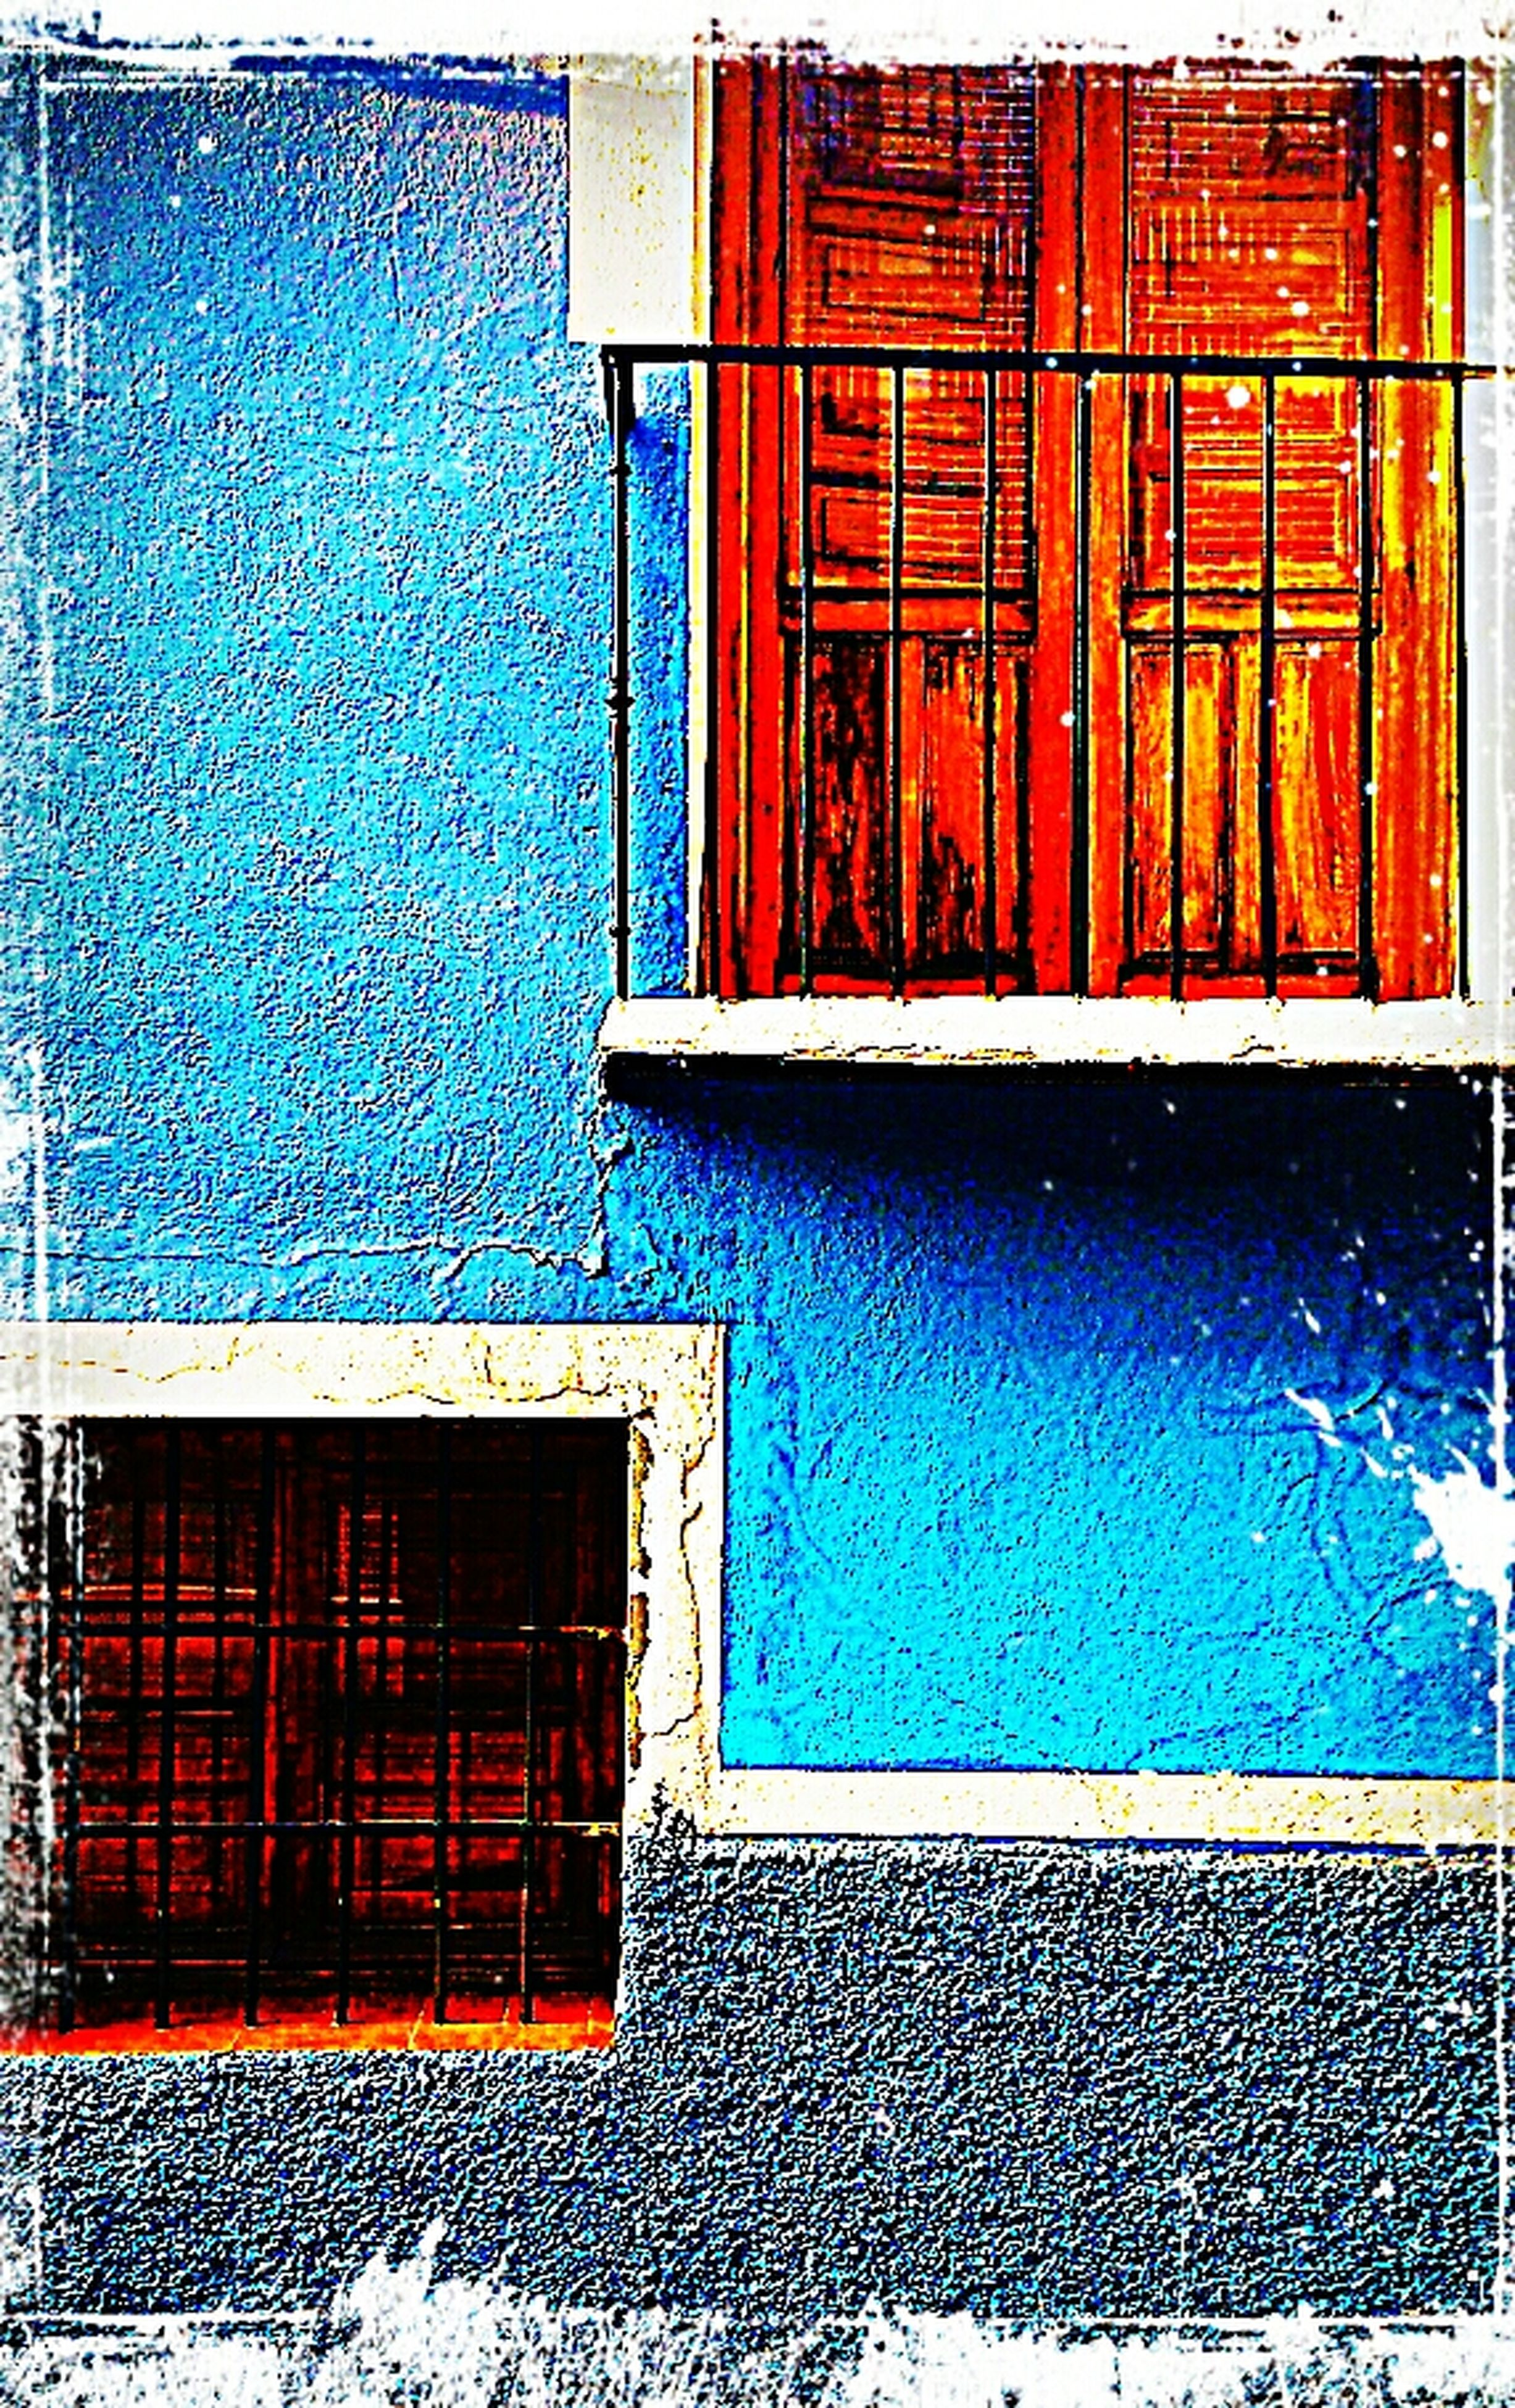 architecture, built structure, building exterior, blue, window, wall - building feature, house, closed, door, wall, residential structure, day, outdoors, no people, brick wall, building, residential building, protection, red, sunlight